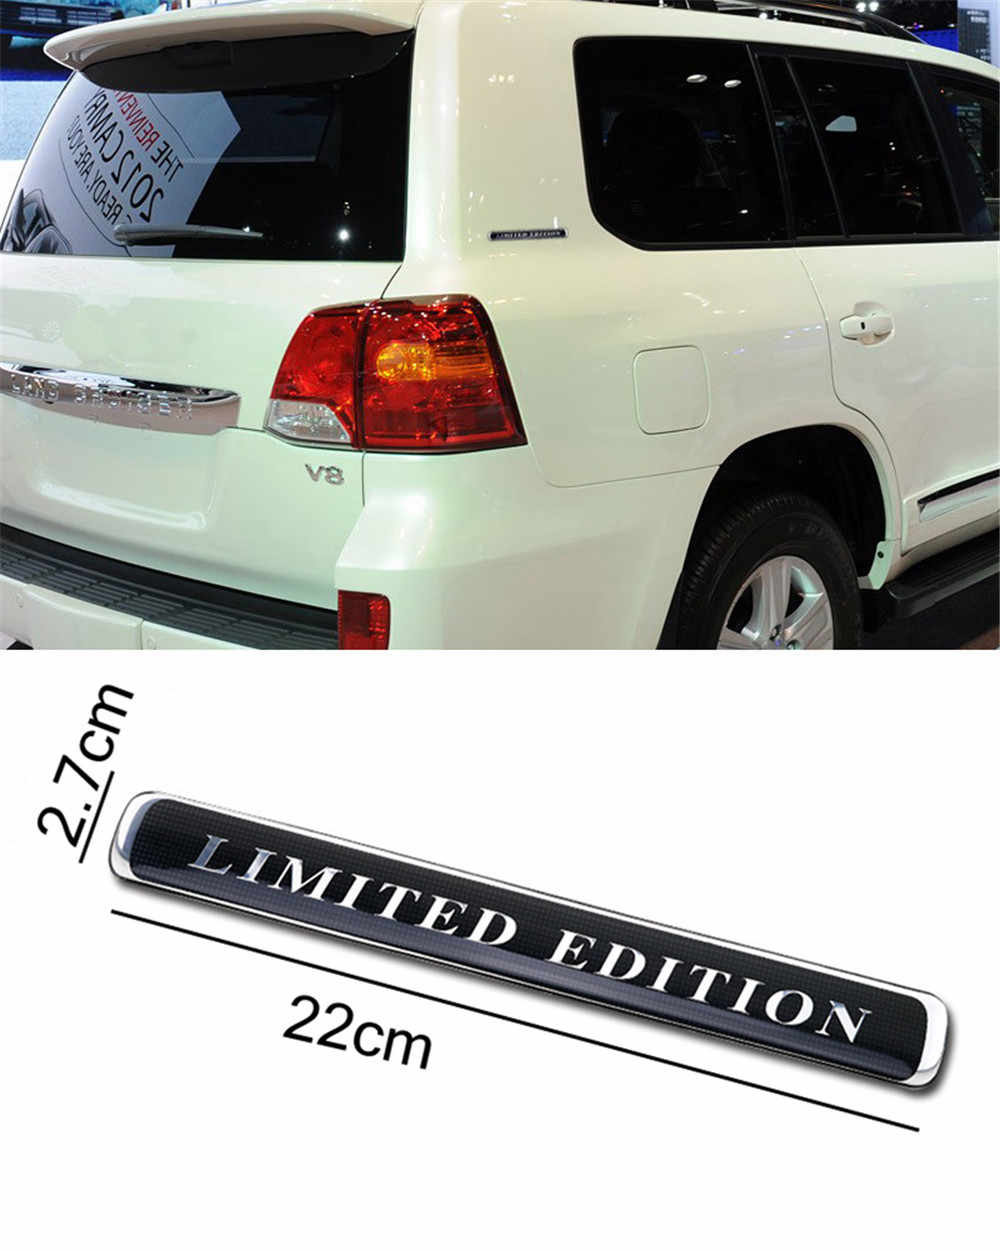 Commemorative Limited Edition Logo Car Body Sticker For Toyota Land Cruiser 200 Fj Cruiser Luxury Suv Auto Trunk Side Emblem Car Stickers Aliexpress